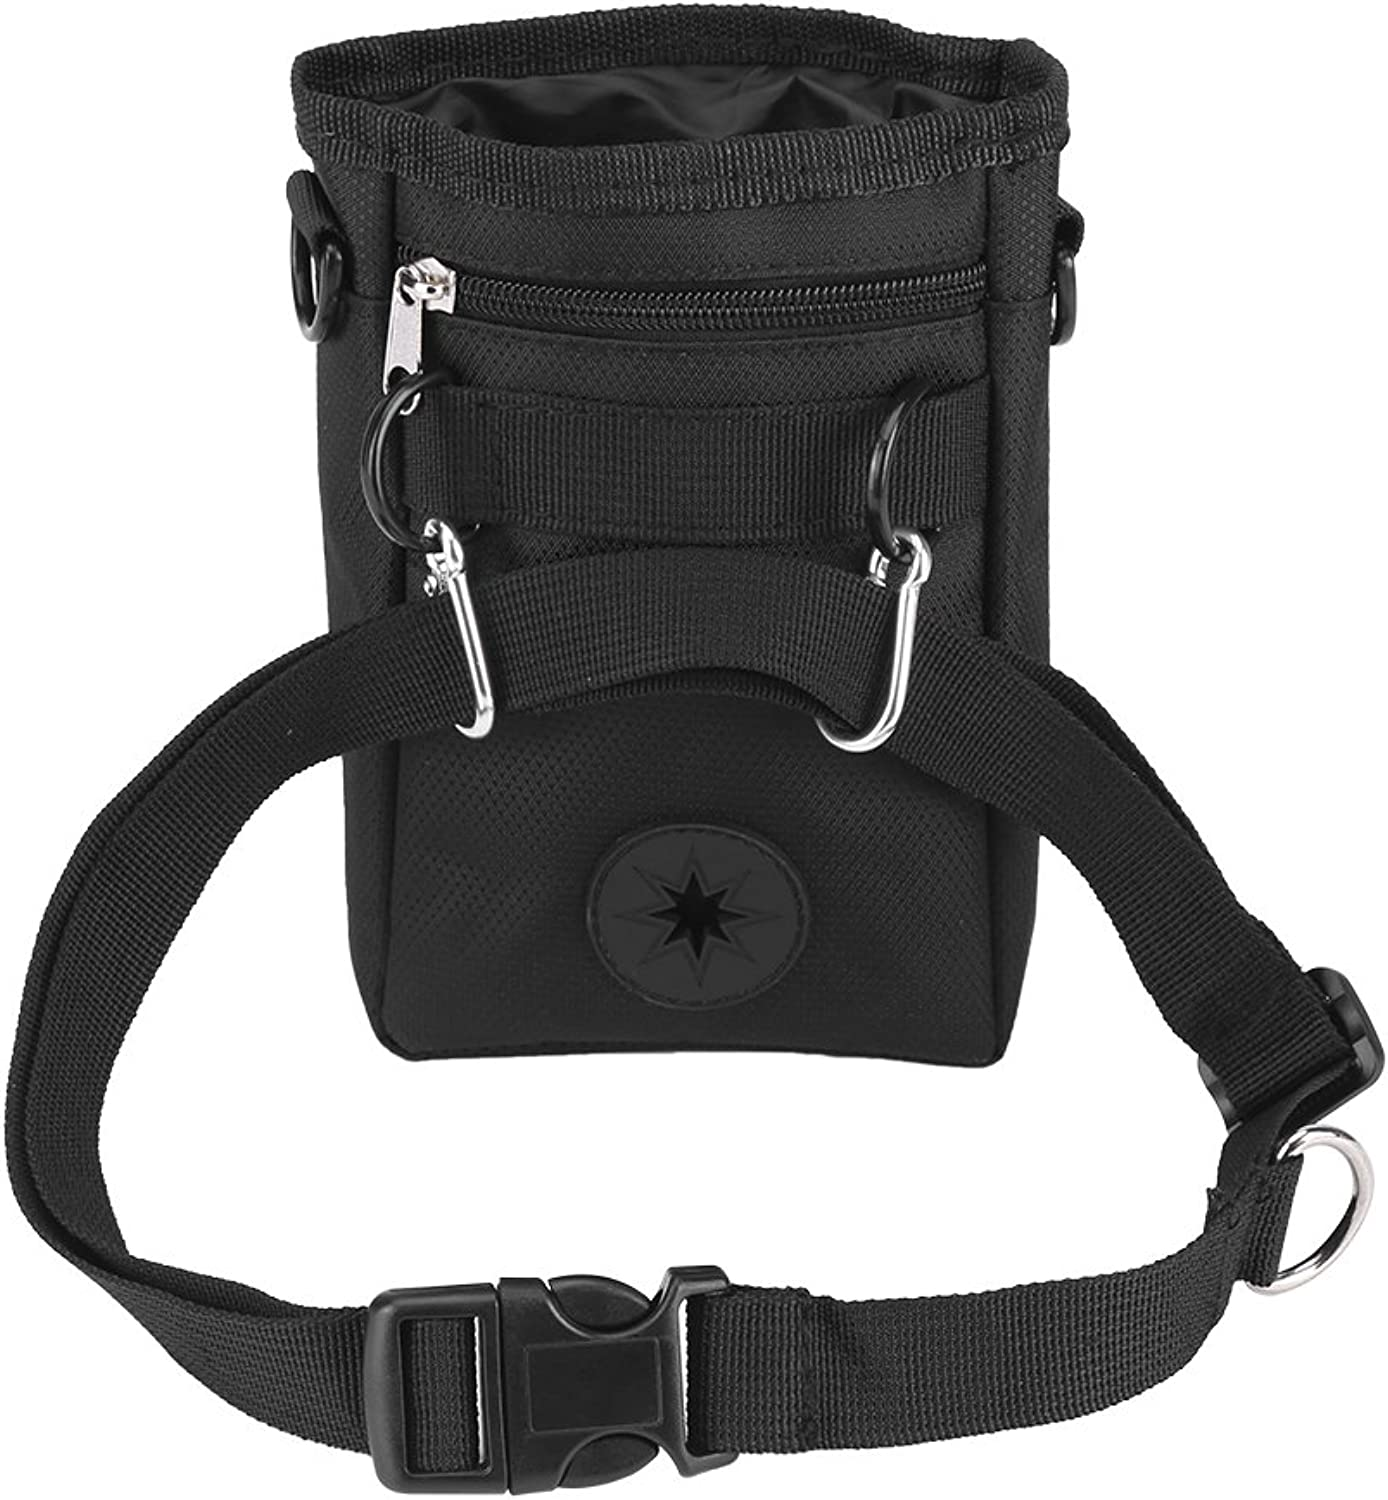 Dog Treat Bag Training Pouch with Adjustable Strap for Outdoor Travel Use